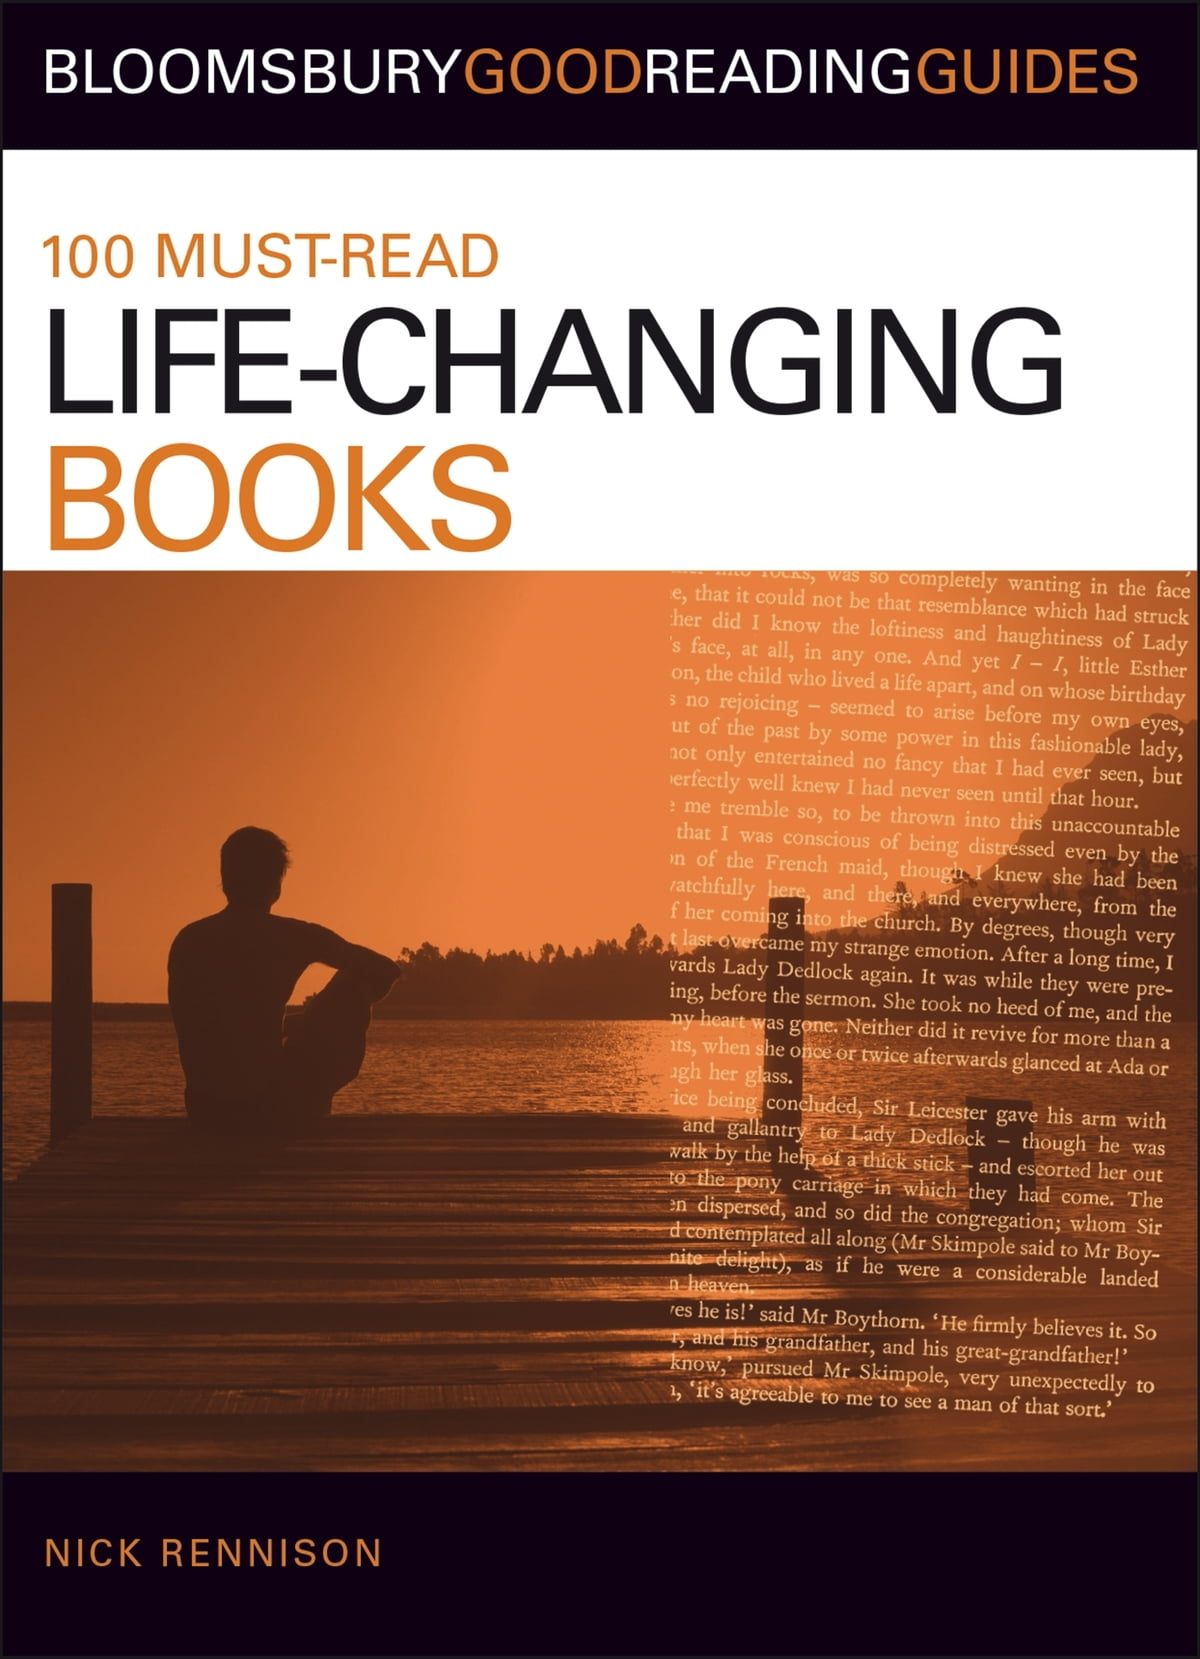 100 Must-read Life-Changing Books eBook by Nick Rennison - 9781408136058 |  Rakuten Kobo